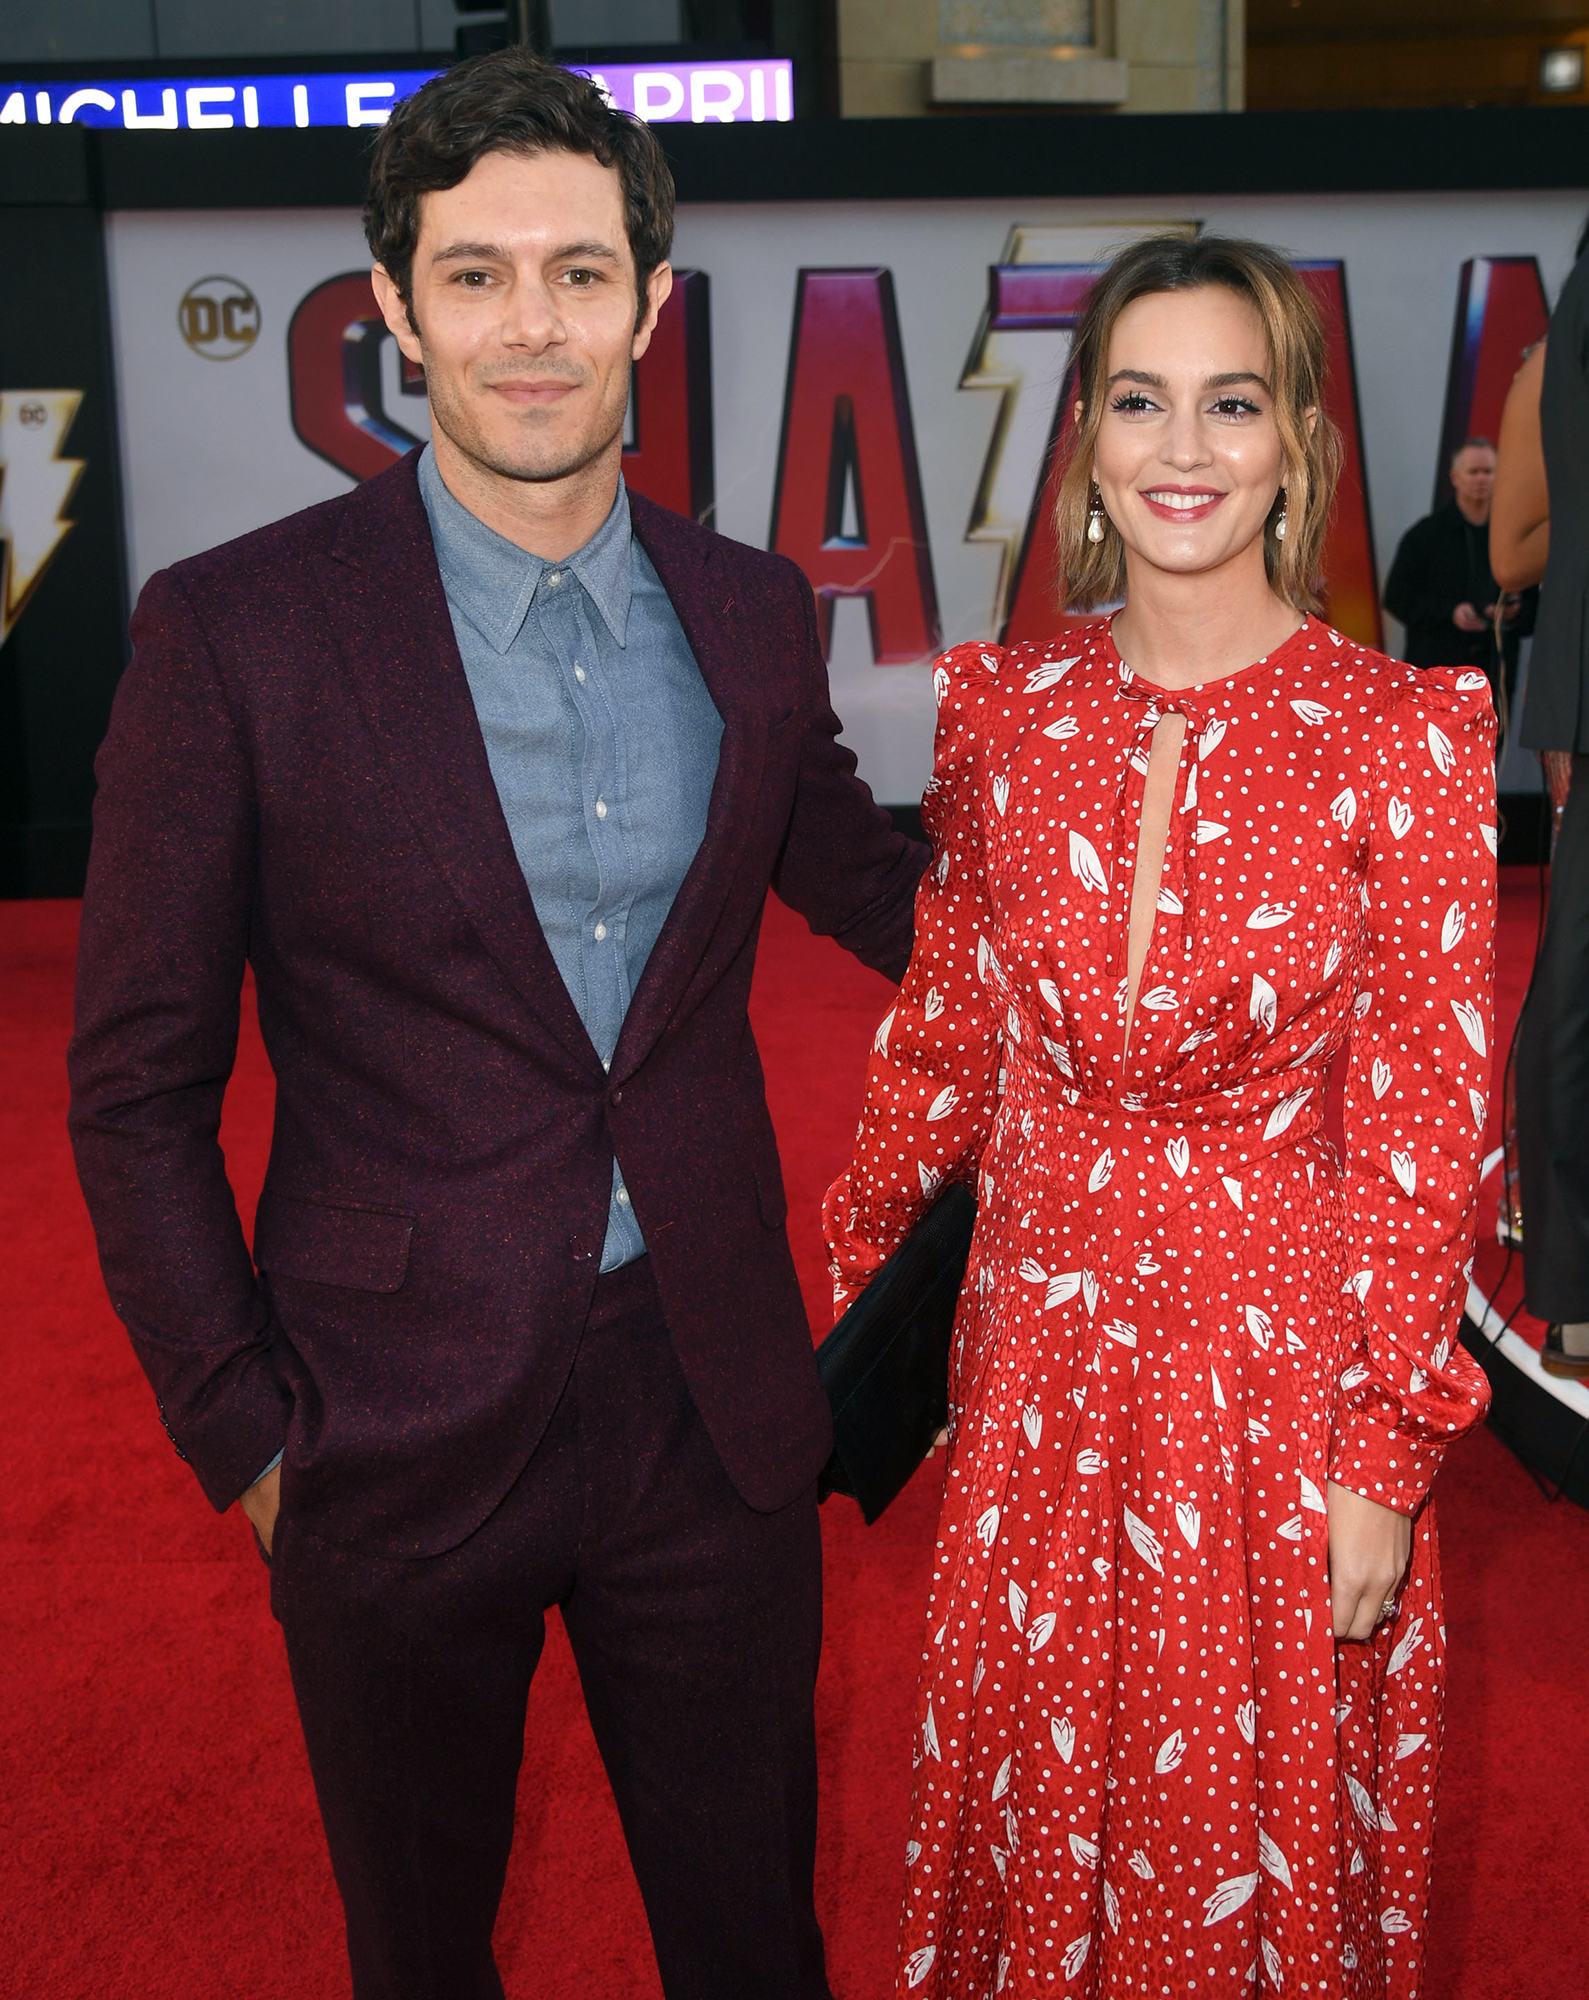 Leighton Meester and Adam Brody Steal the Show on Their First Red Carpet in More Than 2 Years - Meester and Brody will soon be costars once more. Us Weekly confirmed in February that the StartUp actor is set to appear as his wife's onscreen ex in a May episode of her sitcom Single Parents .